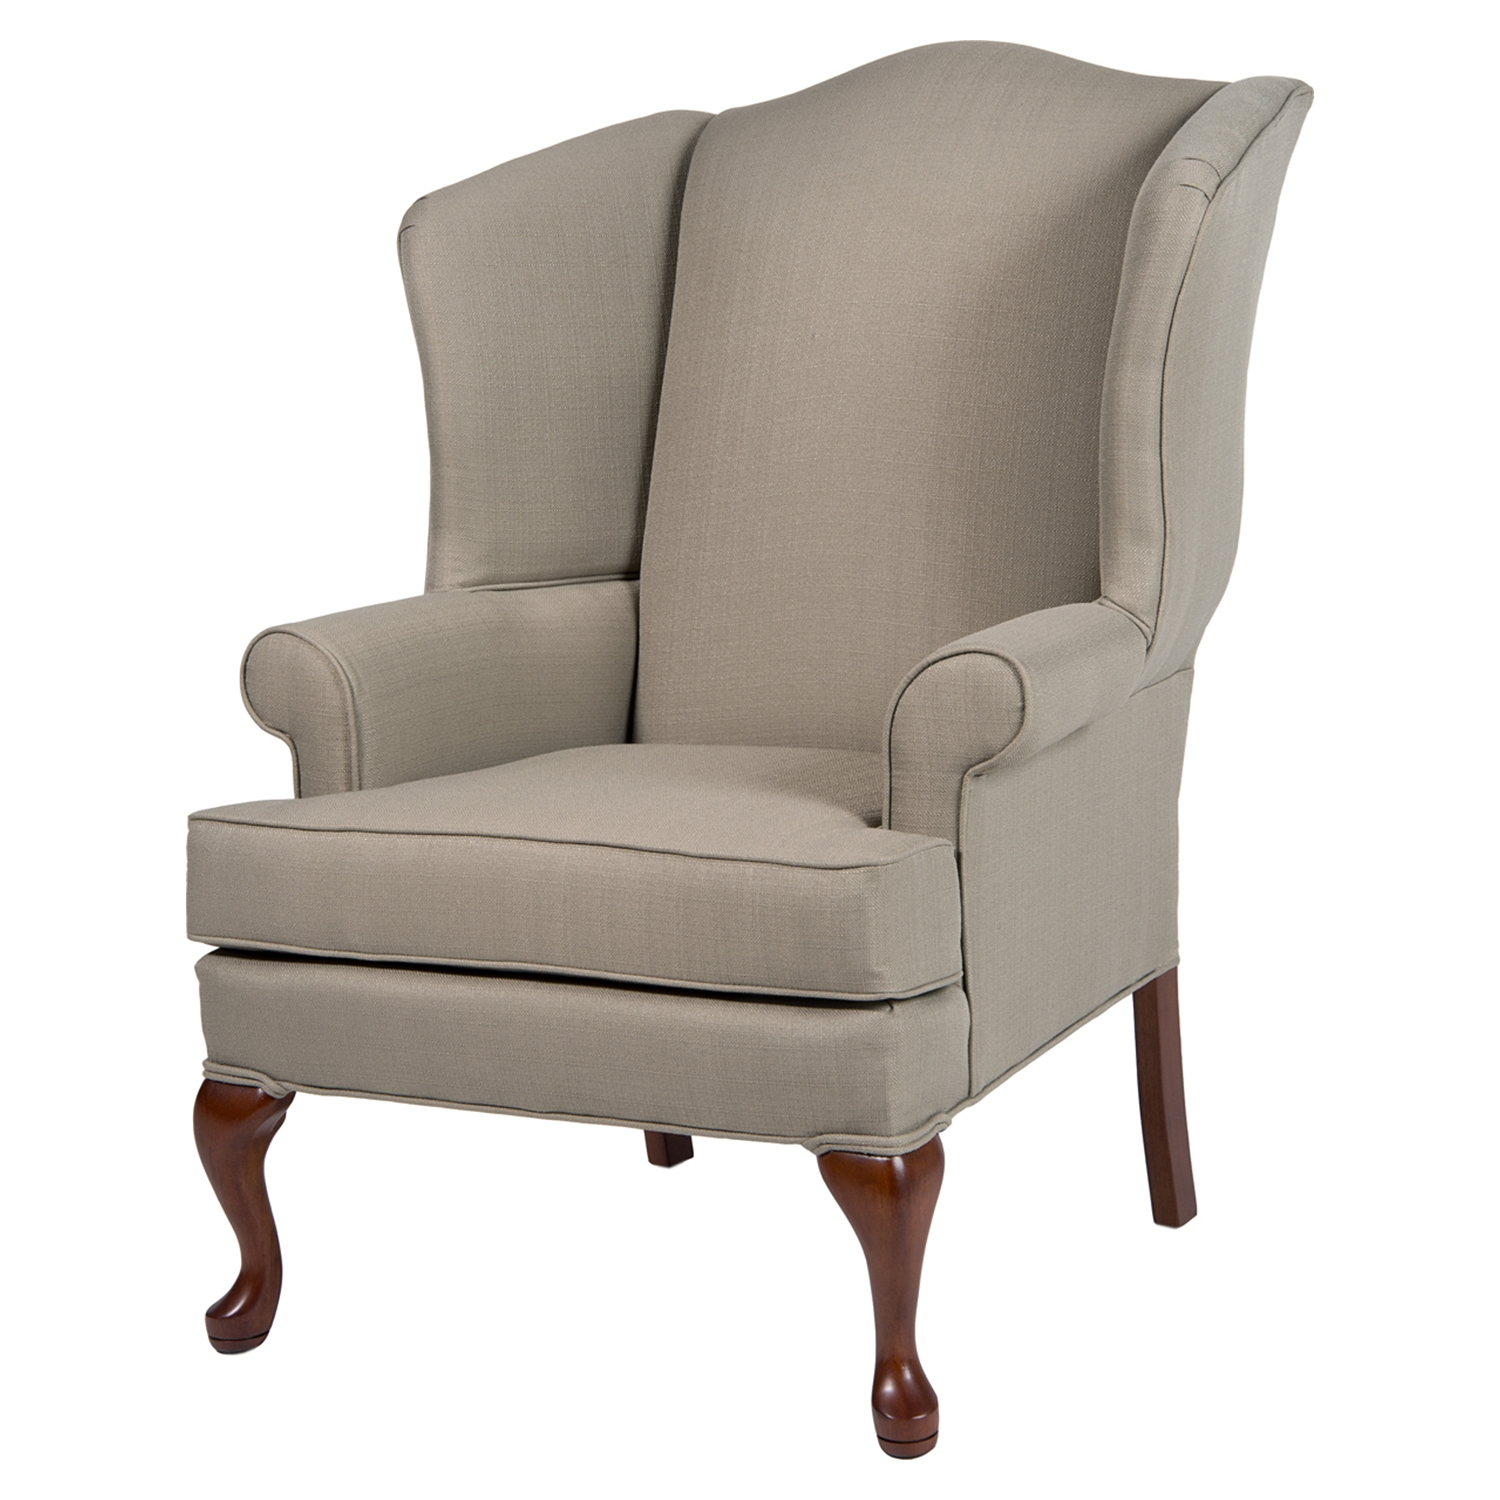 Erin Wingback Chair - Beige, Cherry